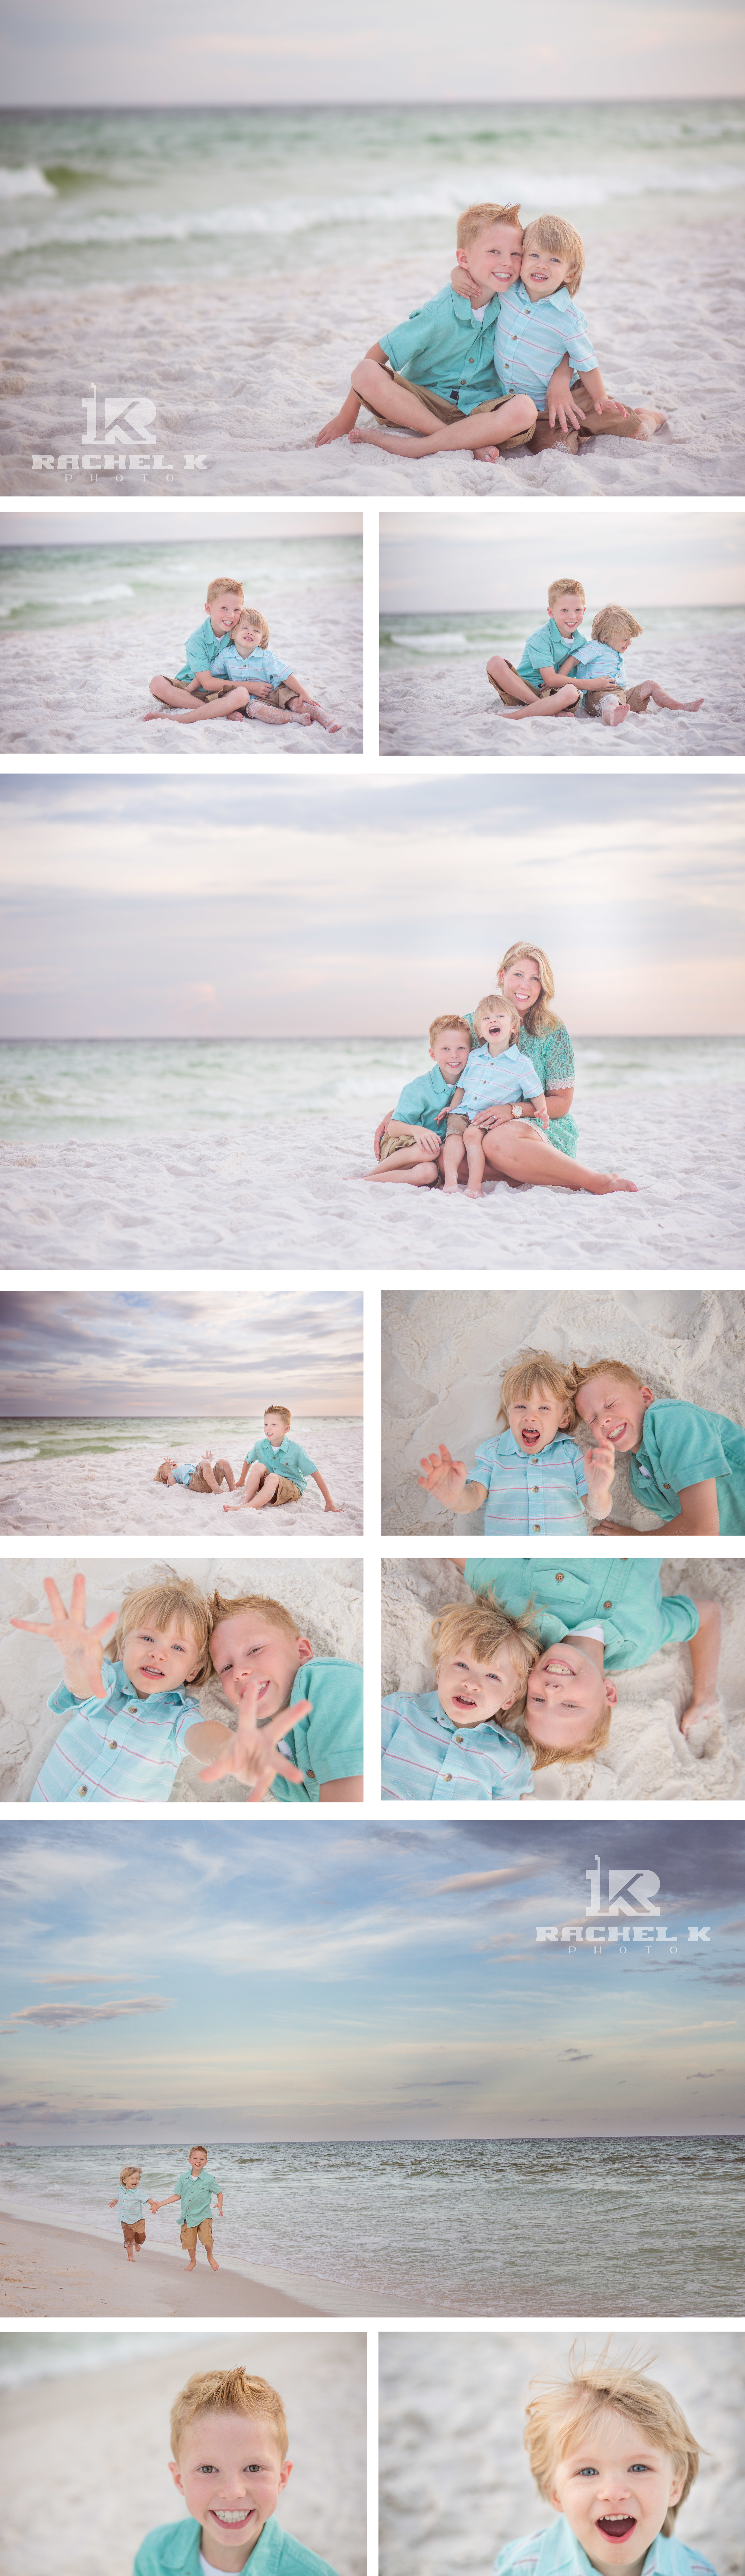 Beach family session by knoxville family photographer Rachel K Photo